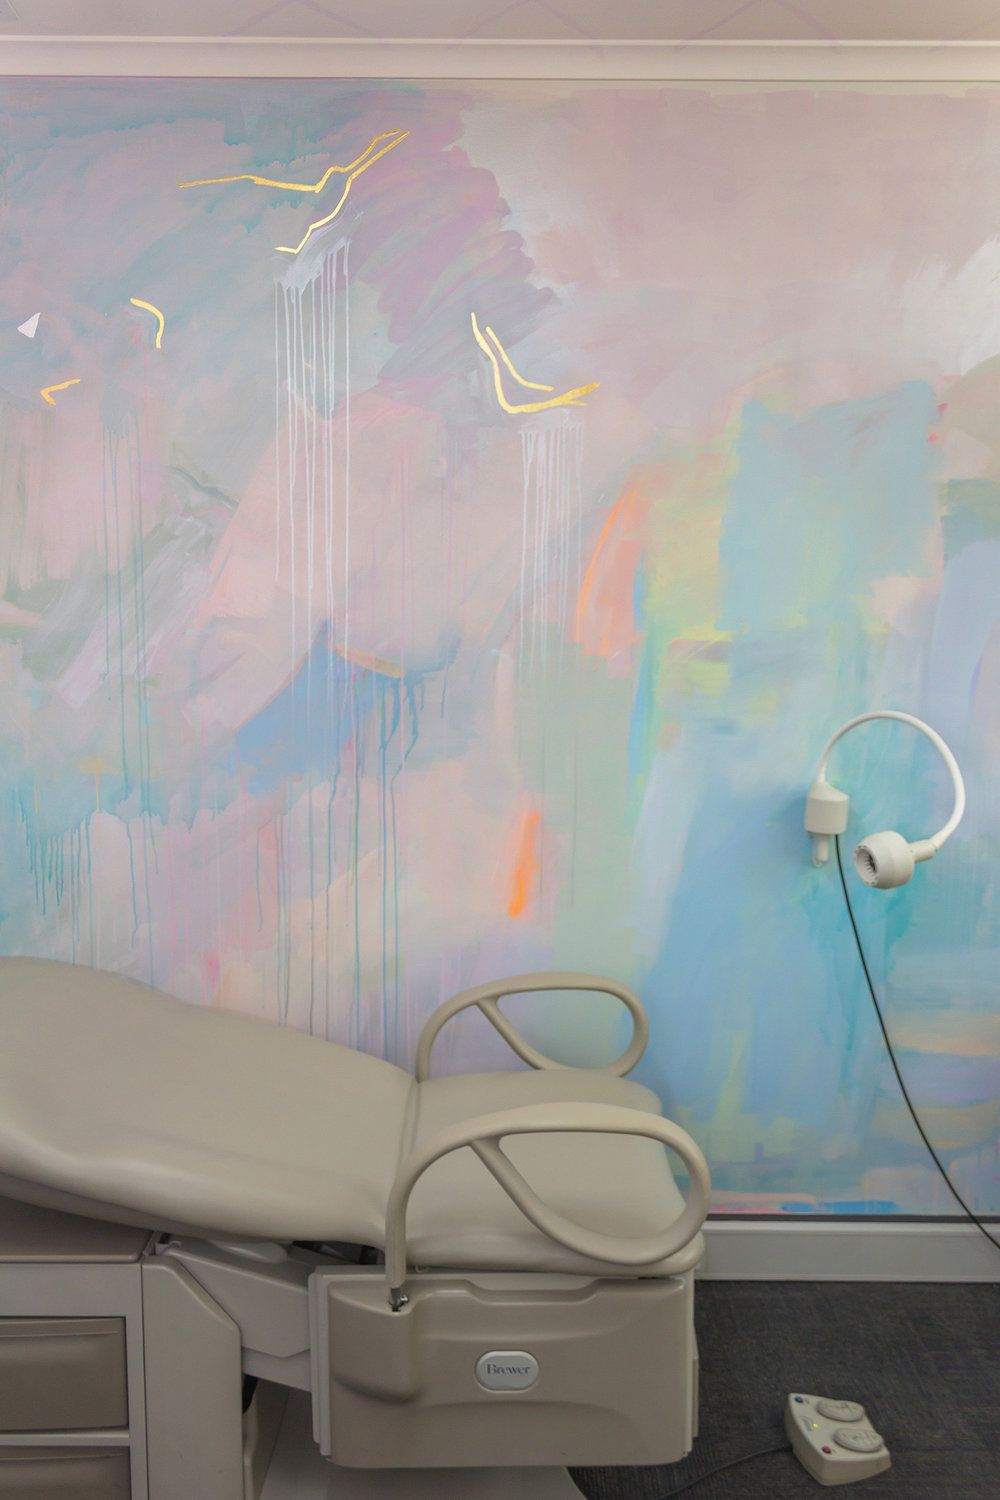 Pastel Abstract Mural Painted In An Ob Gyn Office Featuring Gold Gilded Birds Flying Across The Wal Interior Wall Design Gold Painted Walls Interior Wallpaper